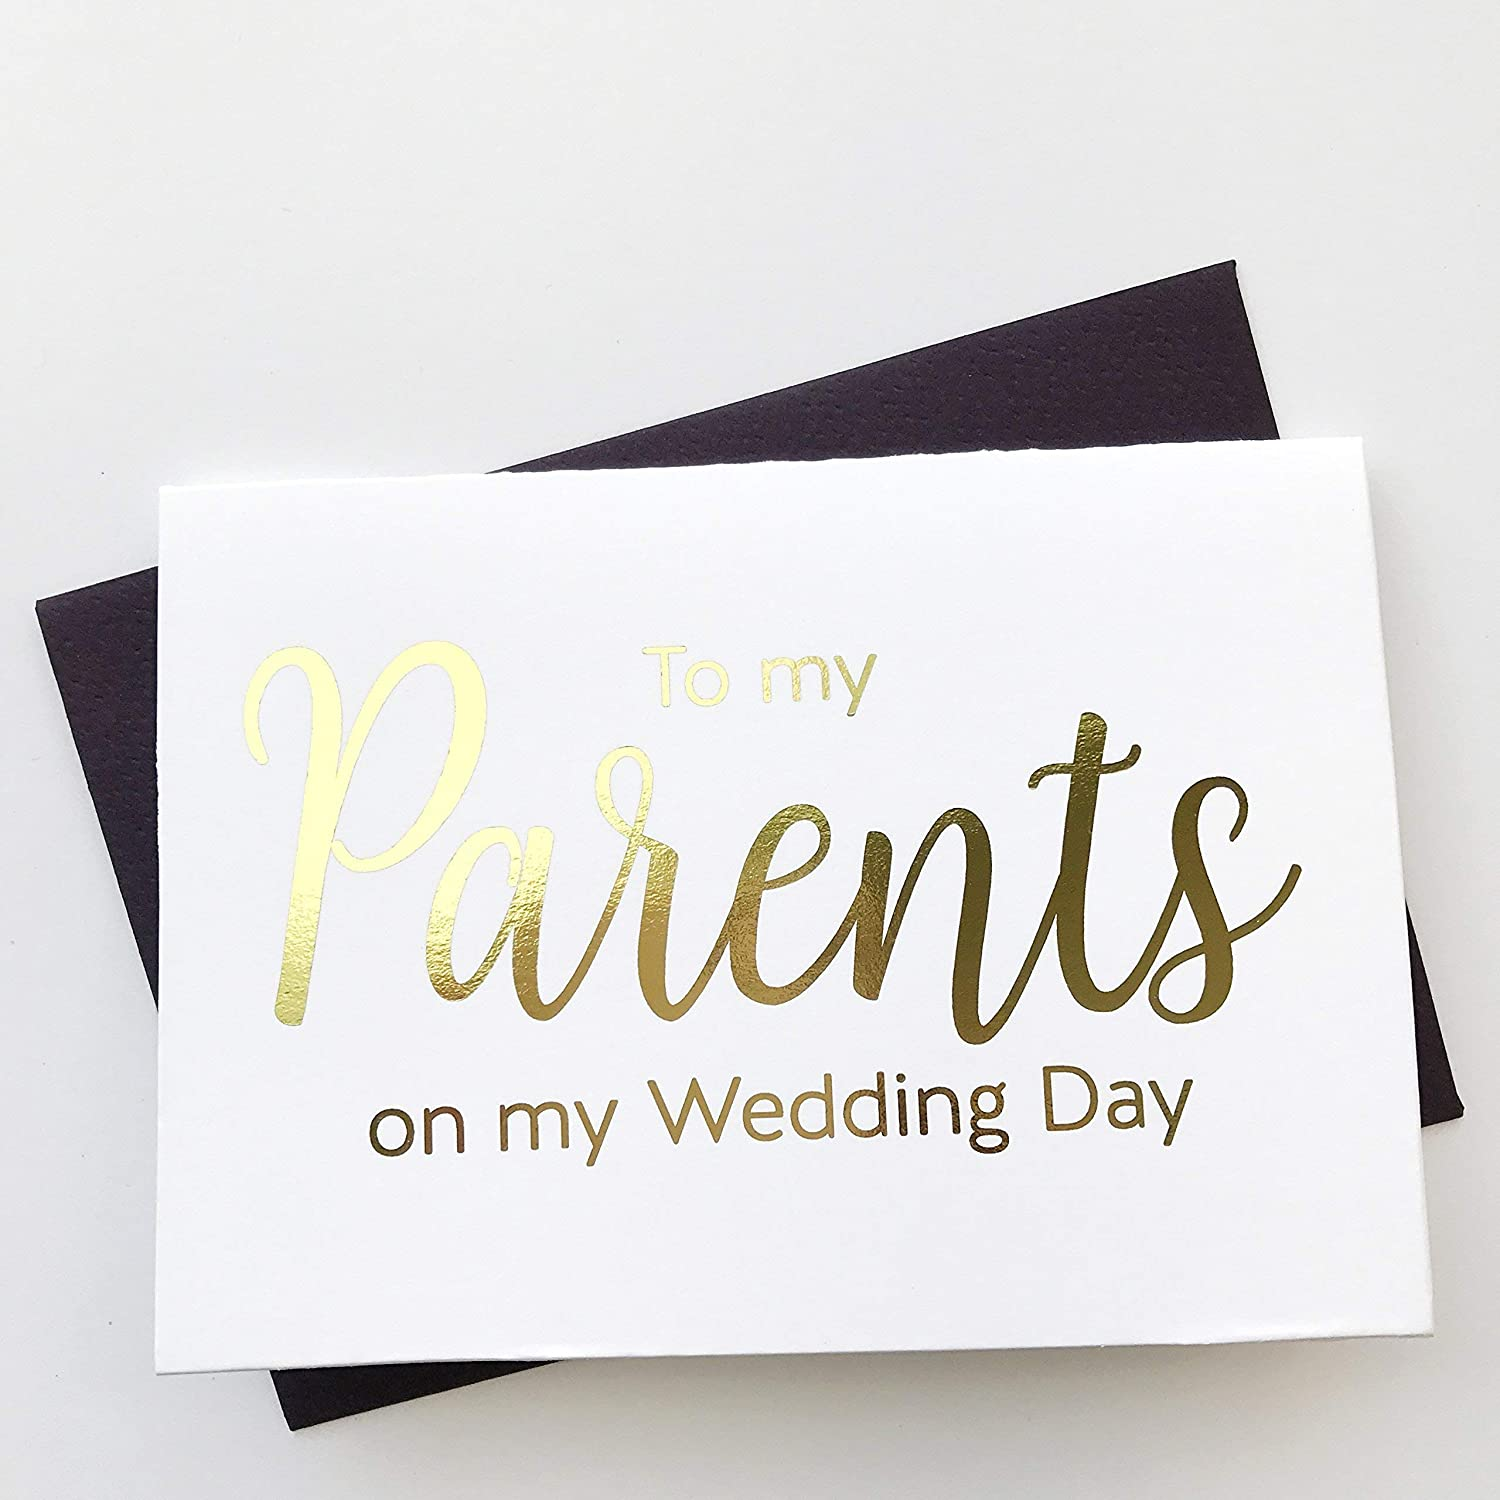 WC045-CL-F Gold Foil Thank you Card Silver Foiled Wedding Day Cards Gold Foiled To Our Parents On My Wedding Day Cards